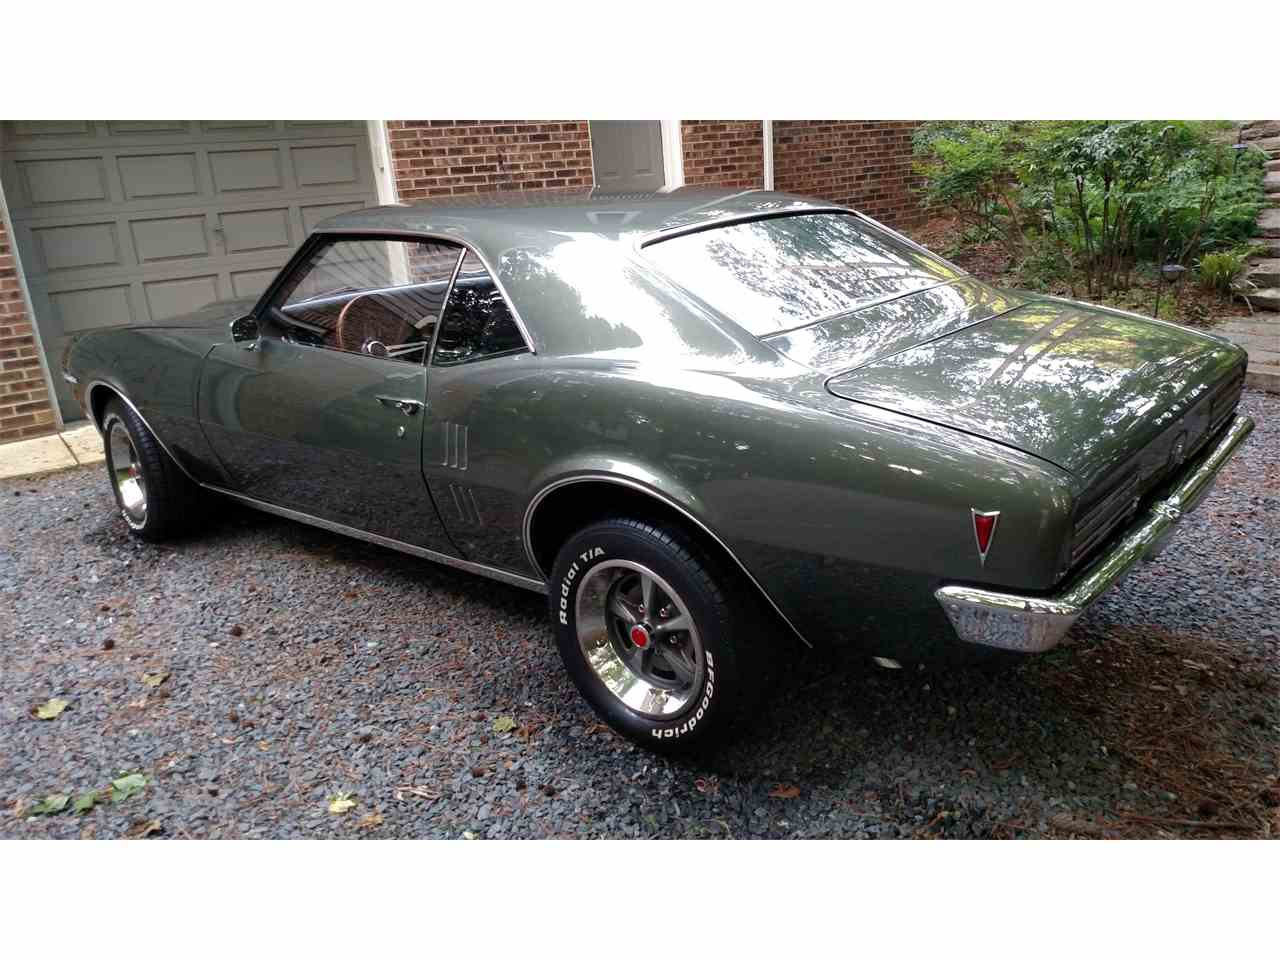 Large Picture of '68 Pontiac Firebird located in Maryland - $31,495.00 Offered by a Private Seller - NI9T